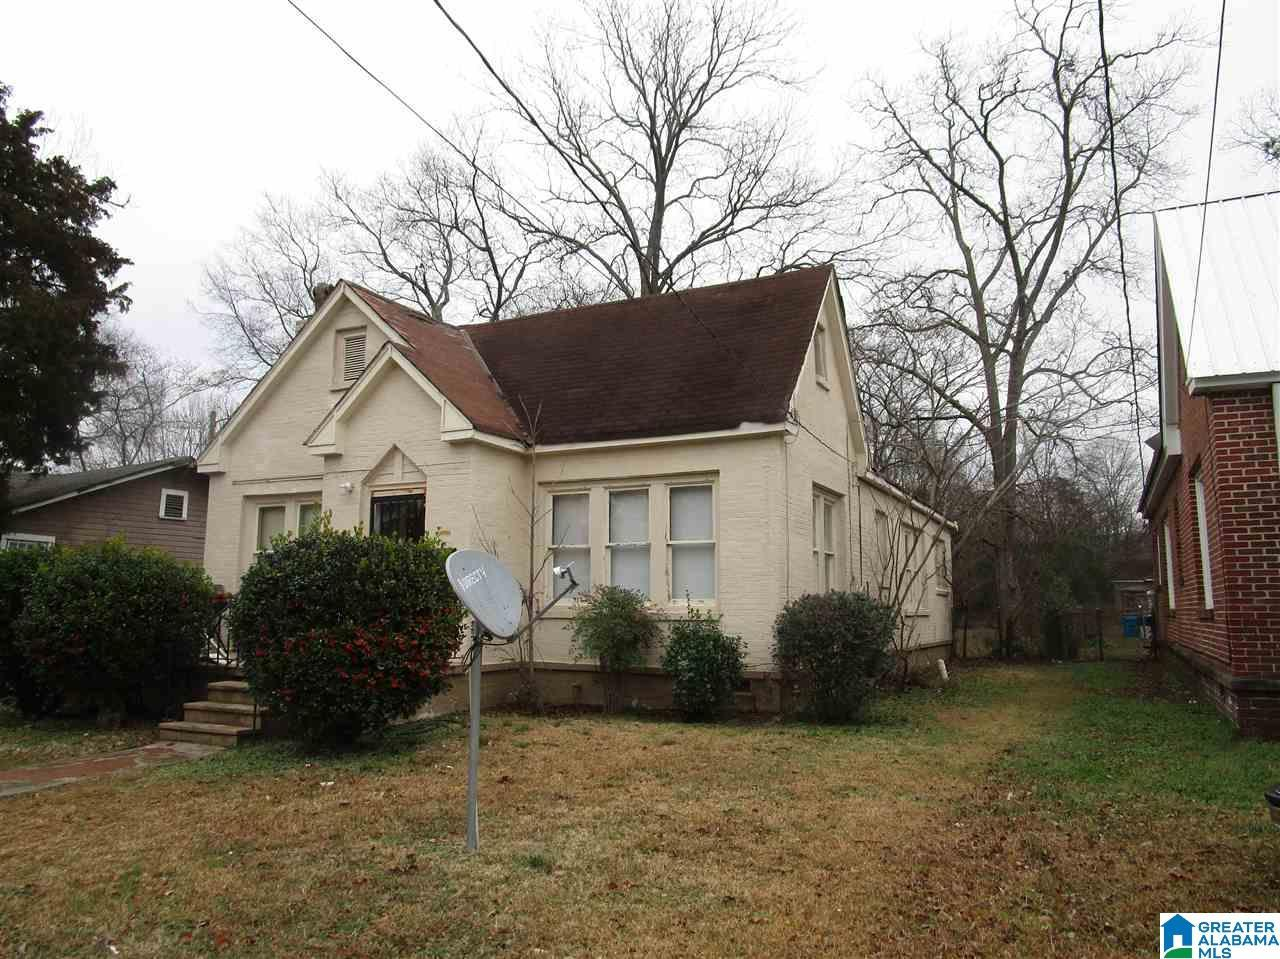 8033 4TH AVE N, Birmingham, AL 35206 - MLS#: 1273771